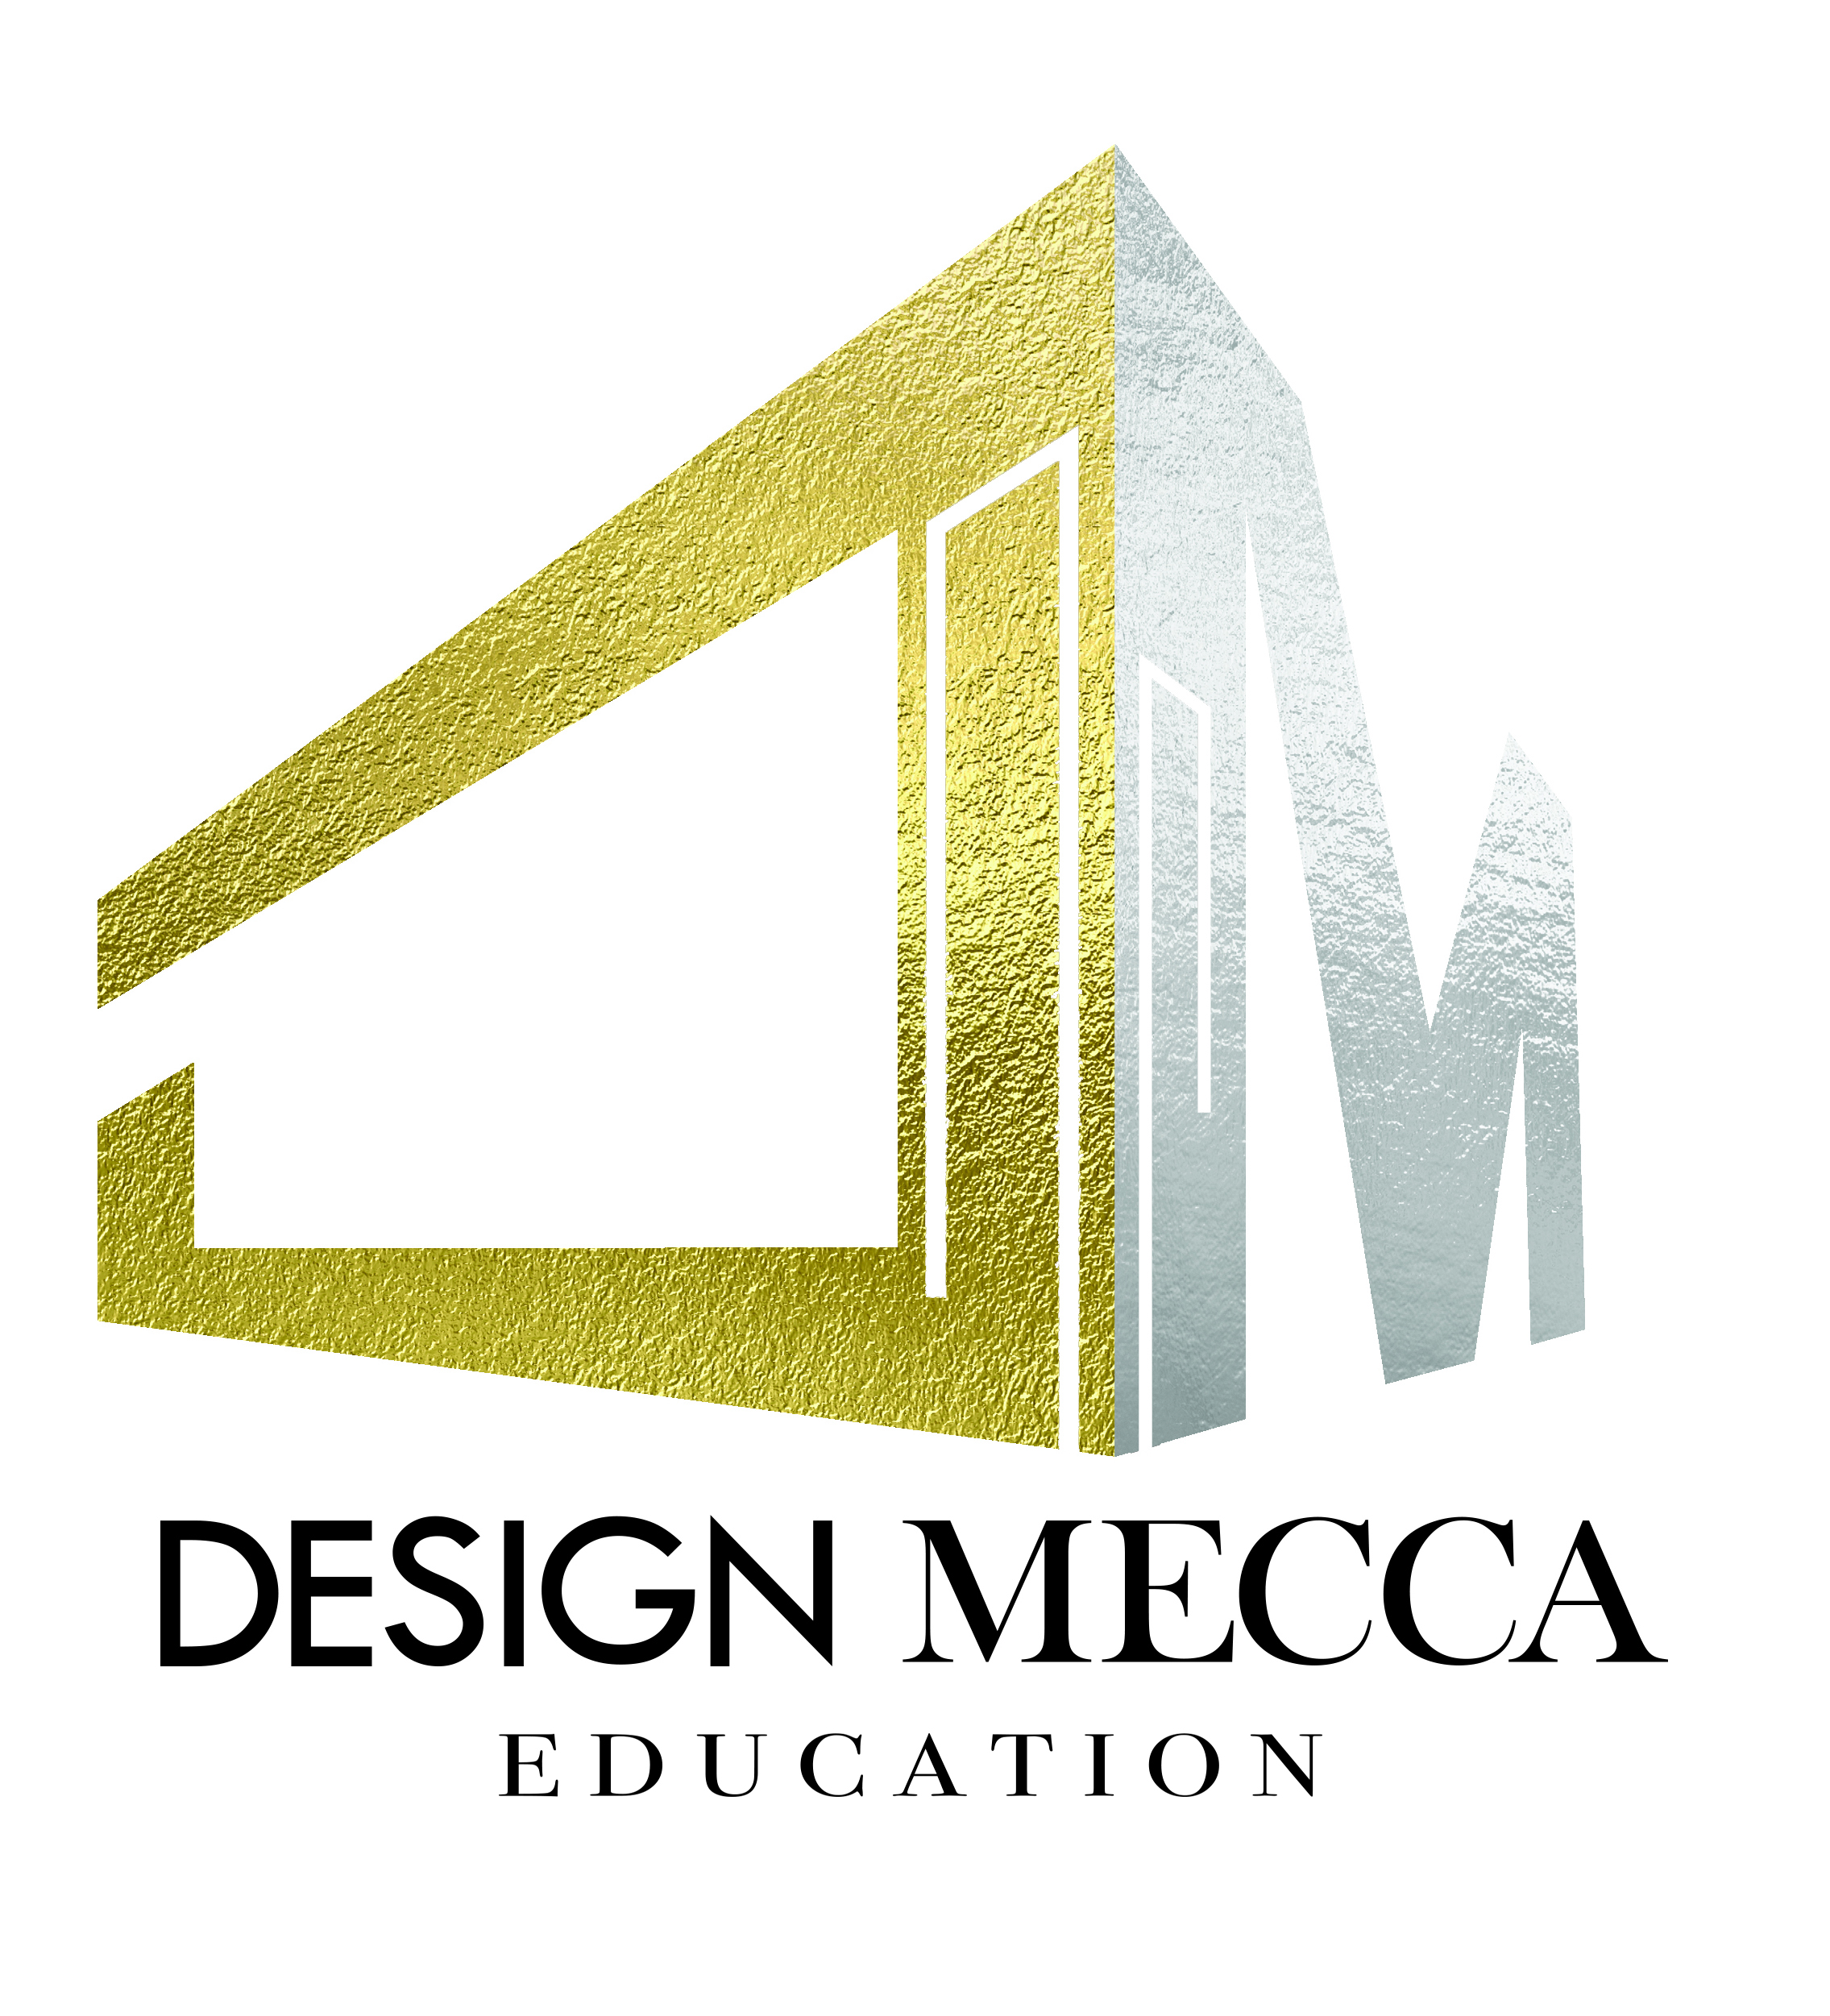 dm-education-hr-logo.jpg